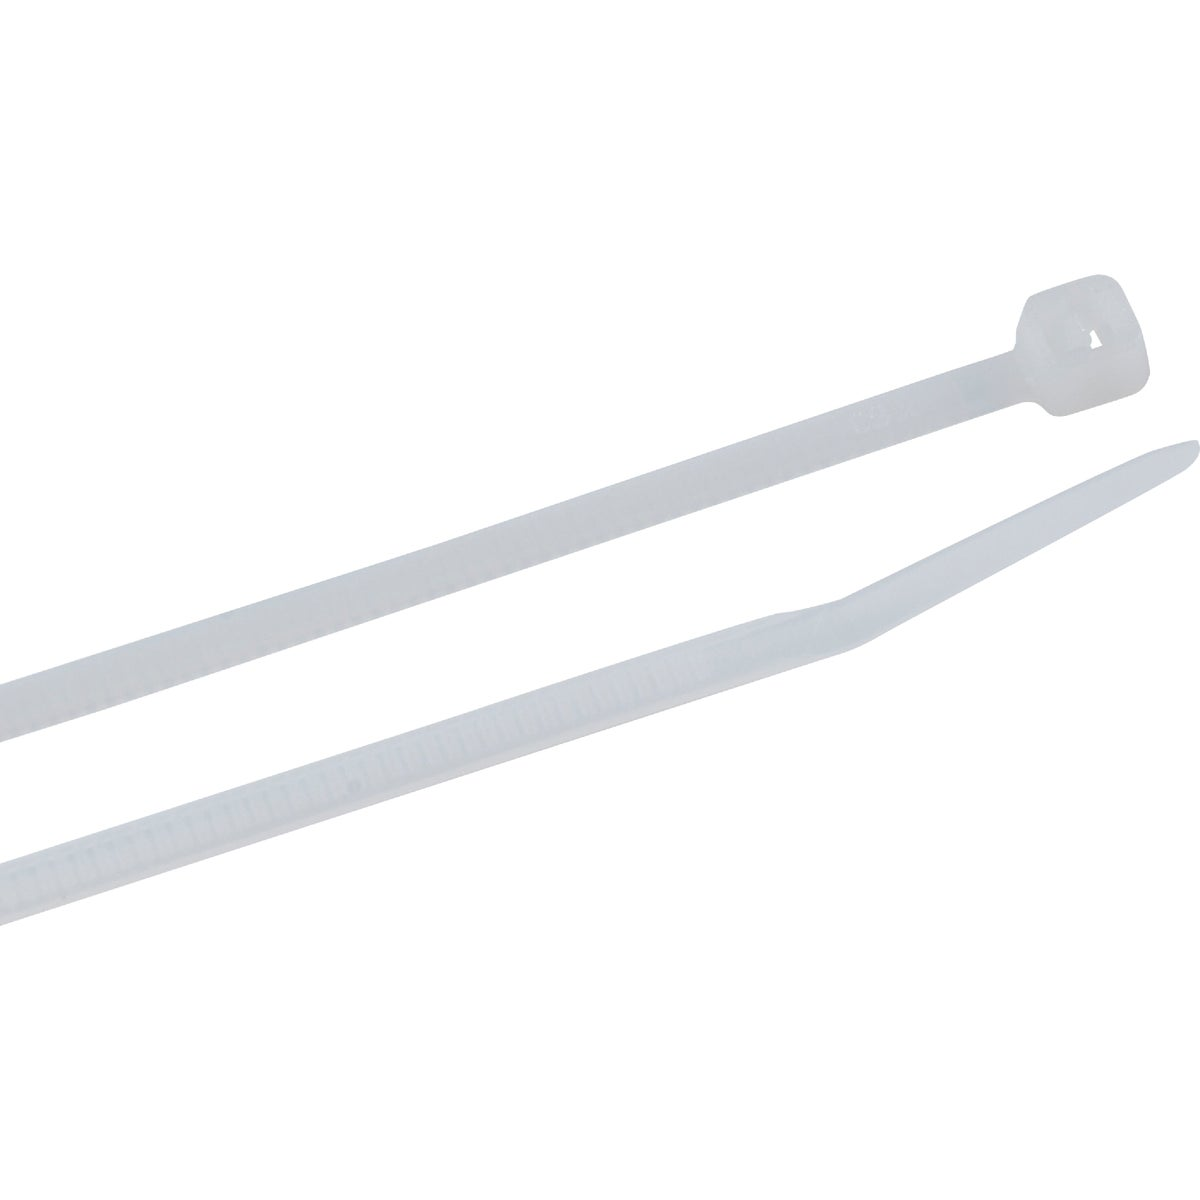 "4"" 40PC NATRL CABLE TIE - 10440C by Thomas & Betts"